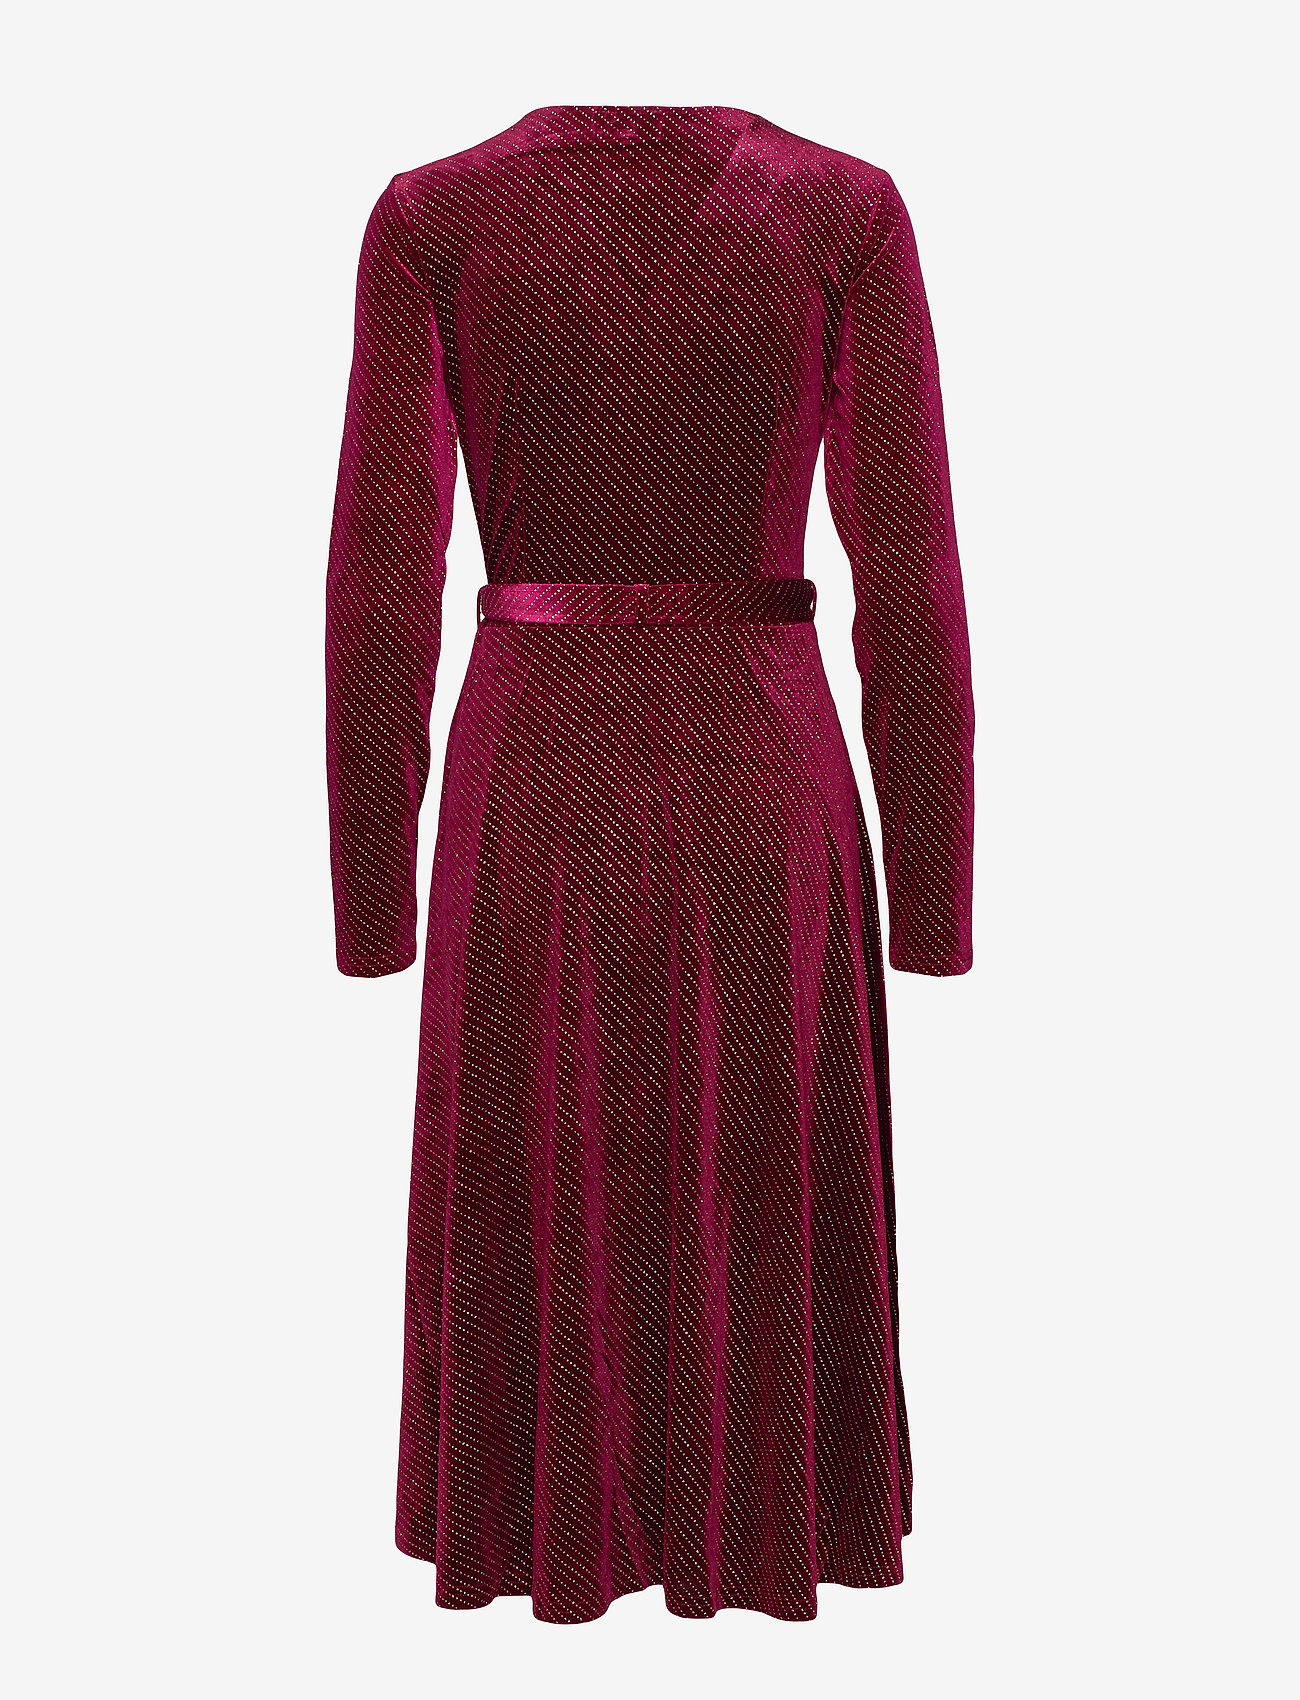 Lizzie Dress Boozt (Bordeaux) - Minus 4ia6Yx